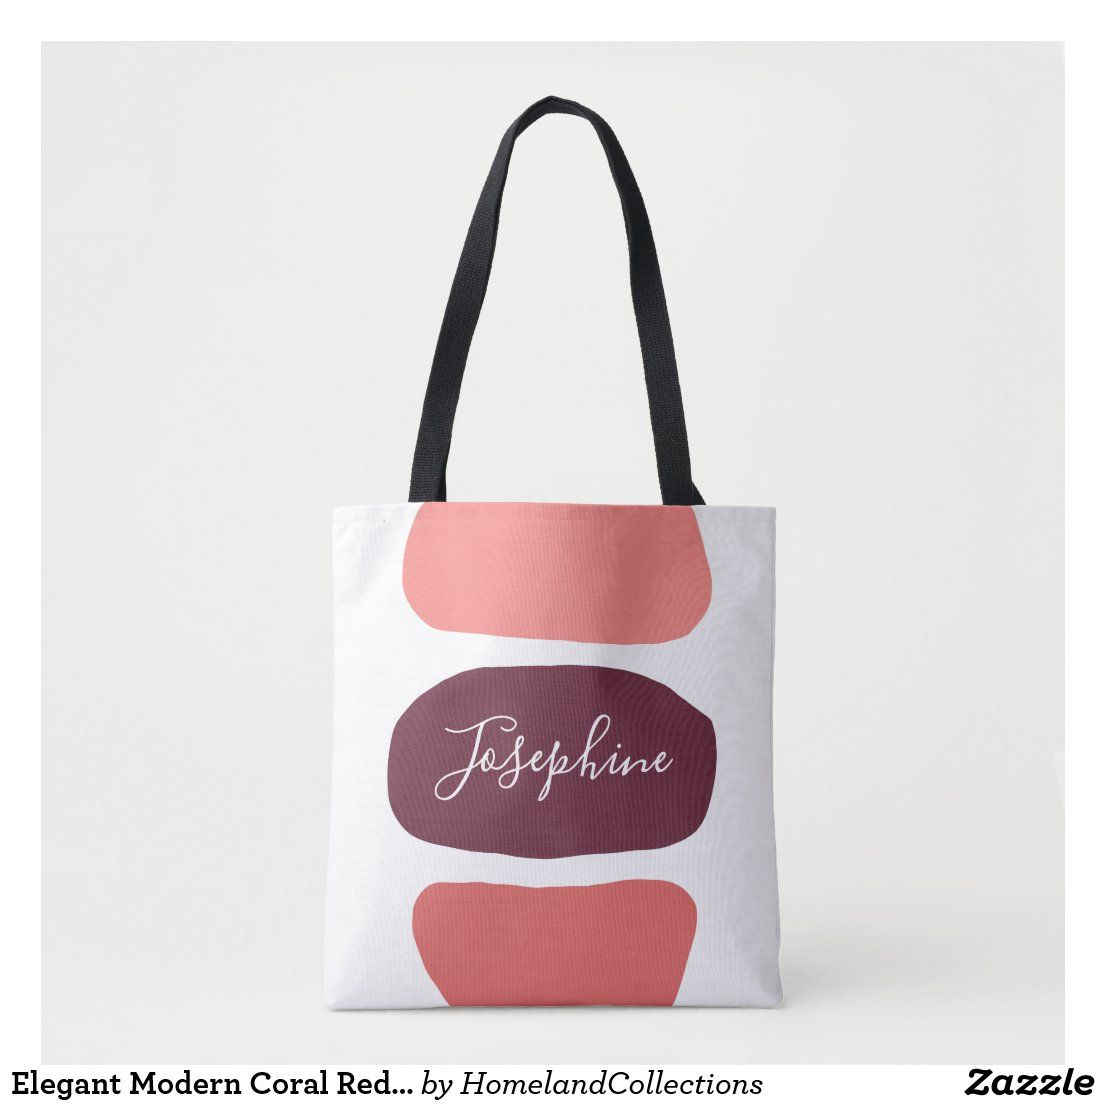 Elegant Modern Coral Red Artsy Pattern Personalize Tote Bag Zazzle Com In 2020 Personalized Tote Bags Personalize Totes Tote Bag